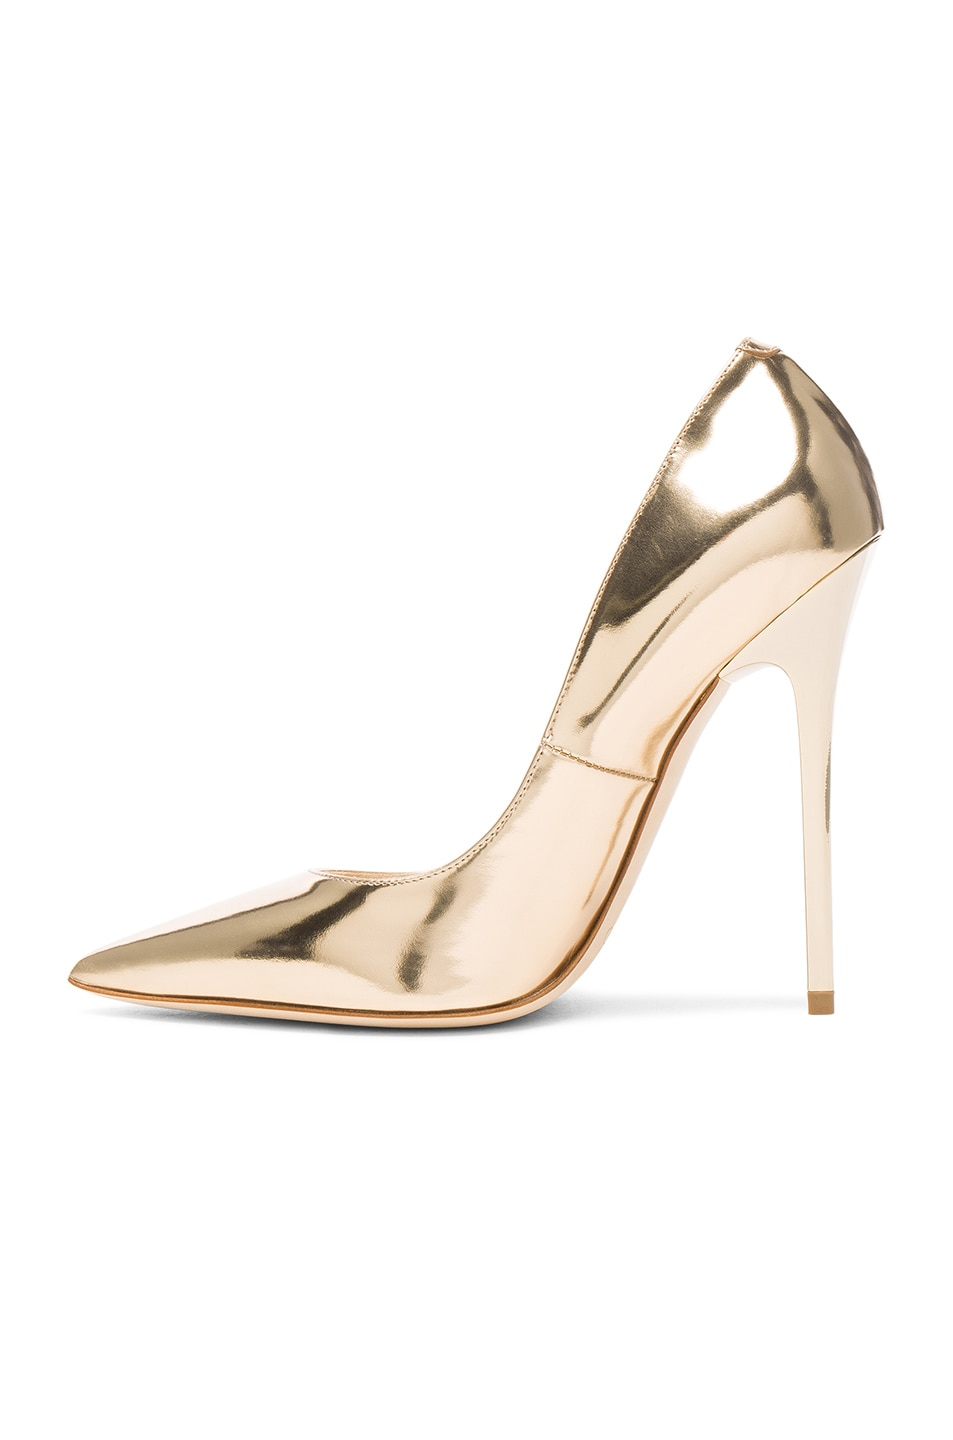 Image 5 of Jimmy Choo Leather Anouk Heels in Dore